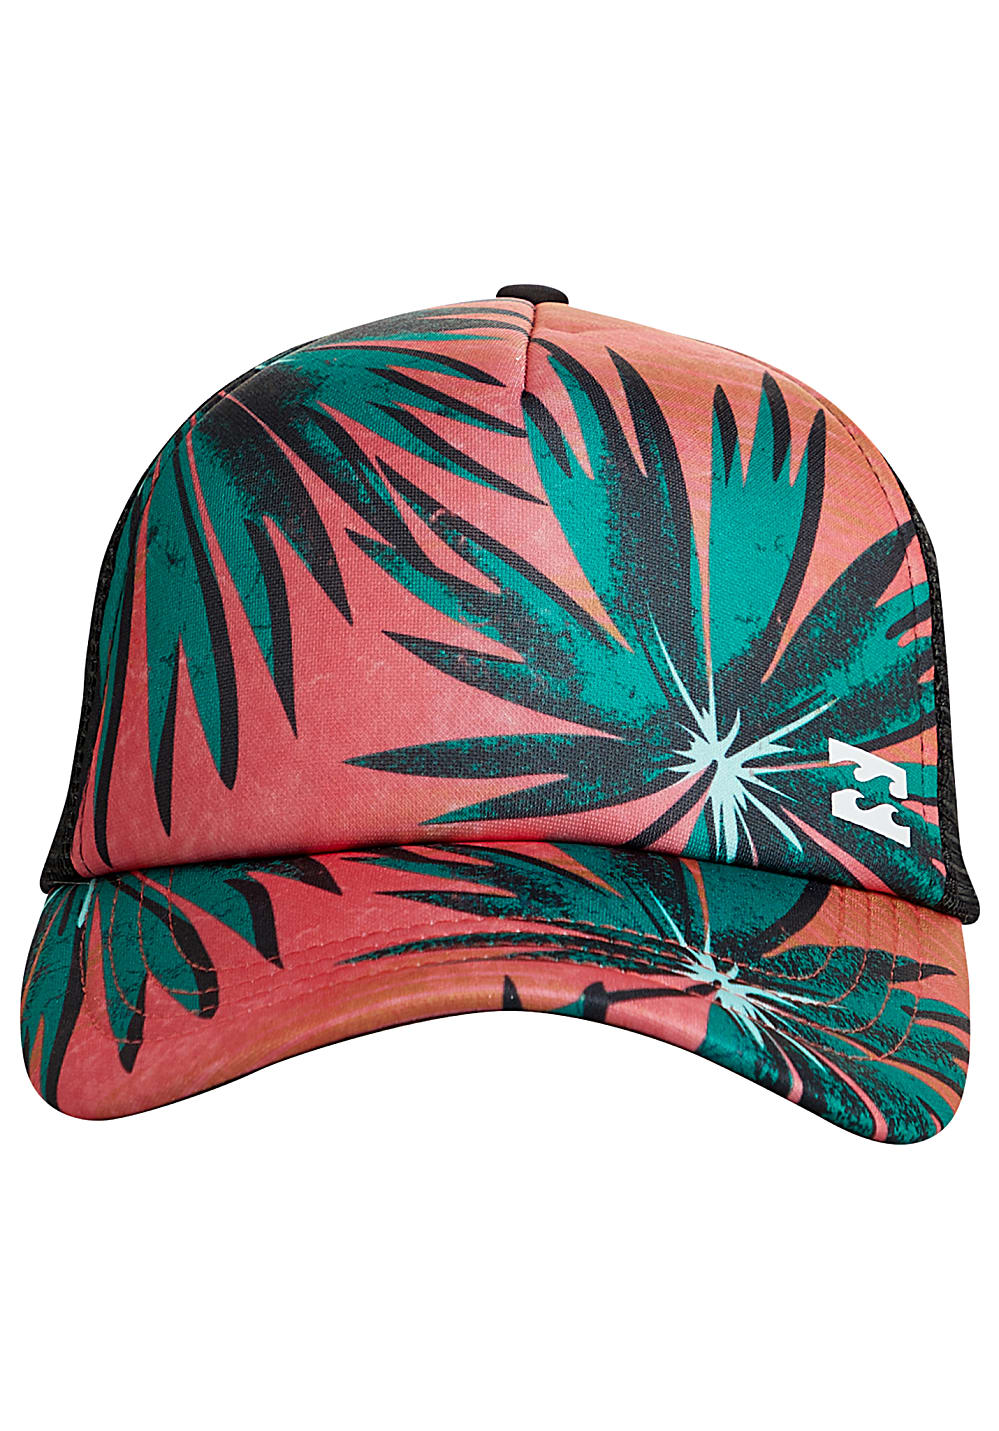 38cd1a4d2 BILLABONG Tropicap - Trucker Cap for Women - Orange